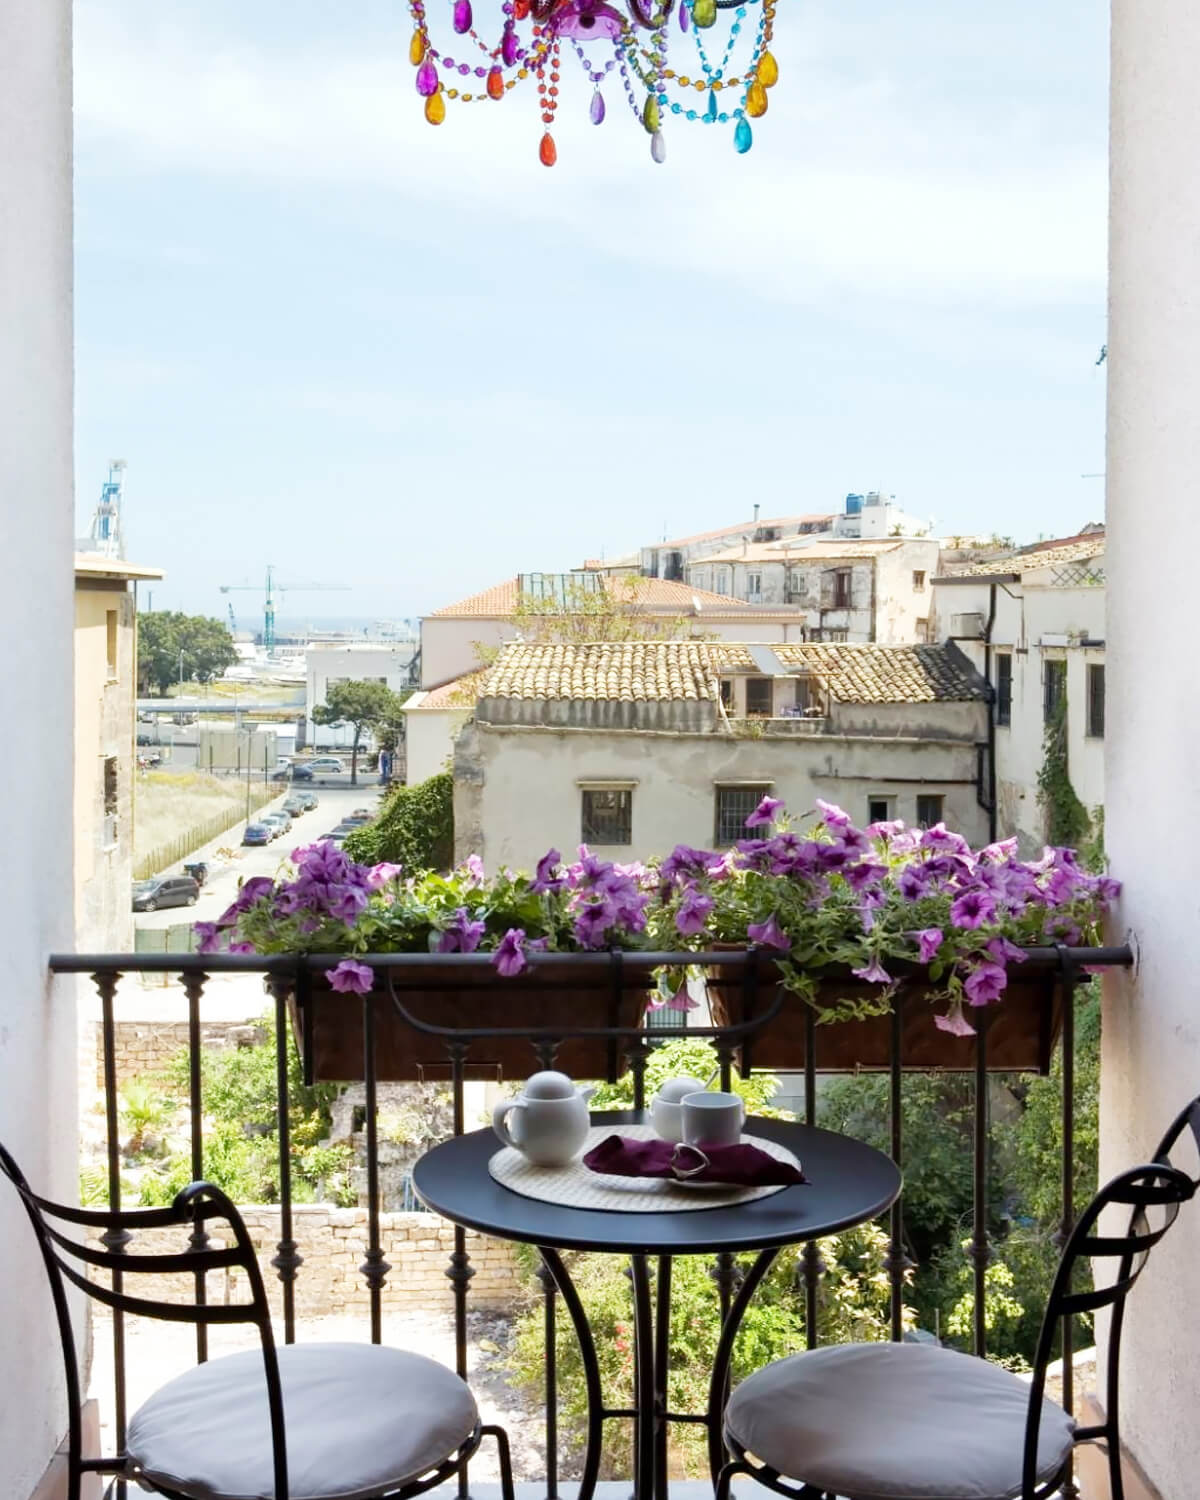 Palermo B&B - Palermo, Sicily, Italy | small luxury hotels, boutique hotels